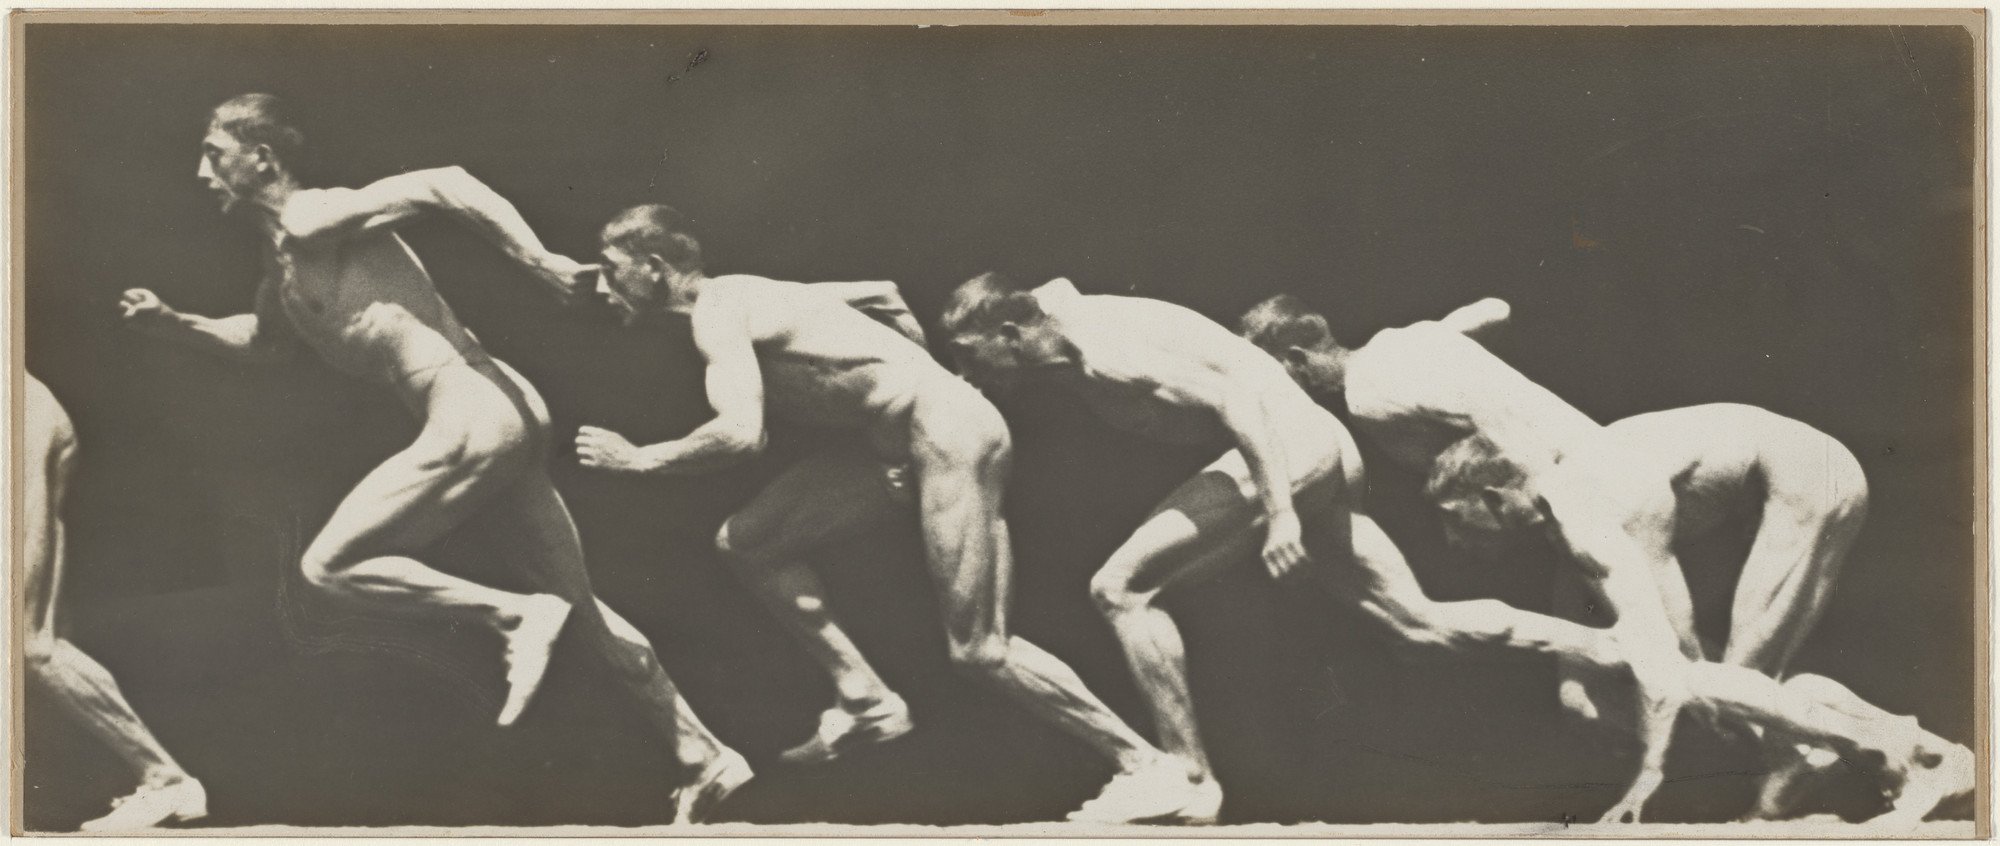 Étienne-Jules Marey, Georges Demenÿ. Untitled (Sprinter). After 1893